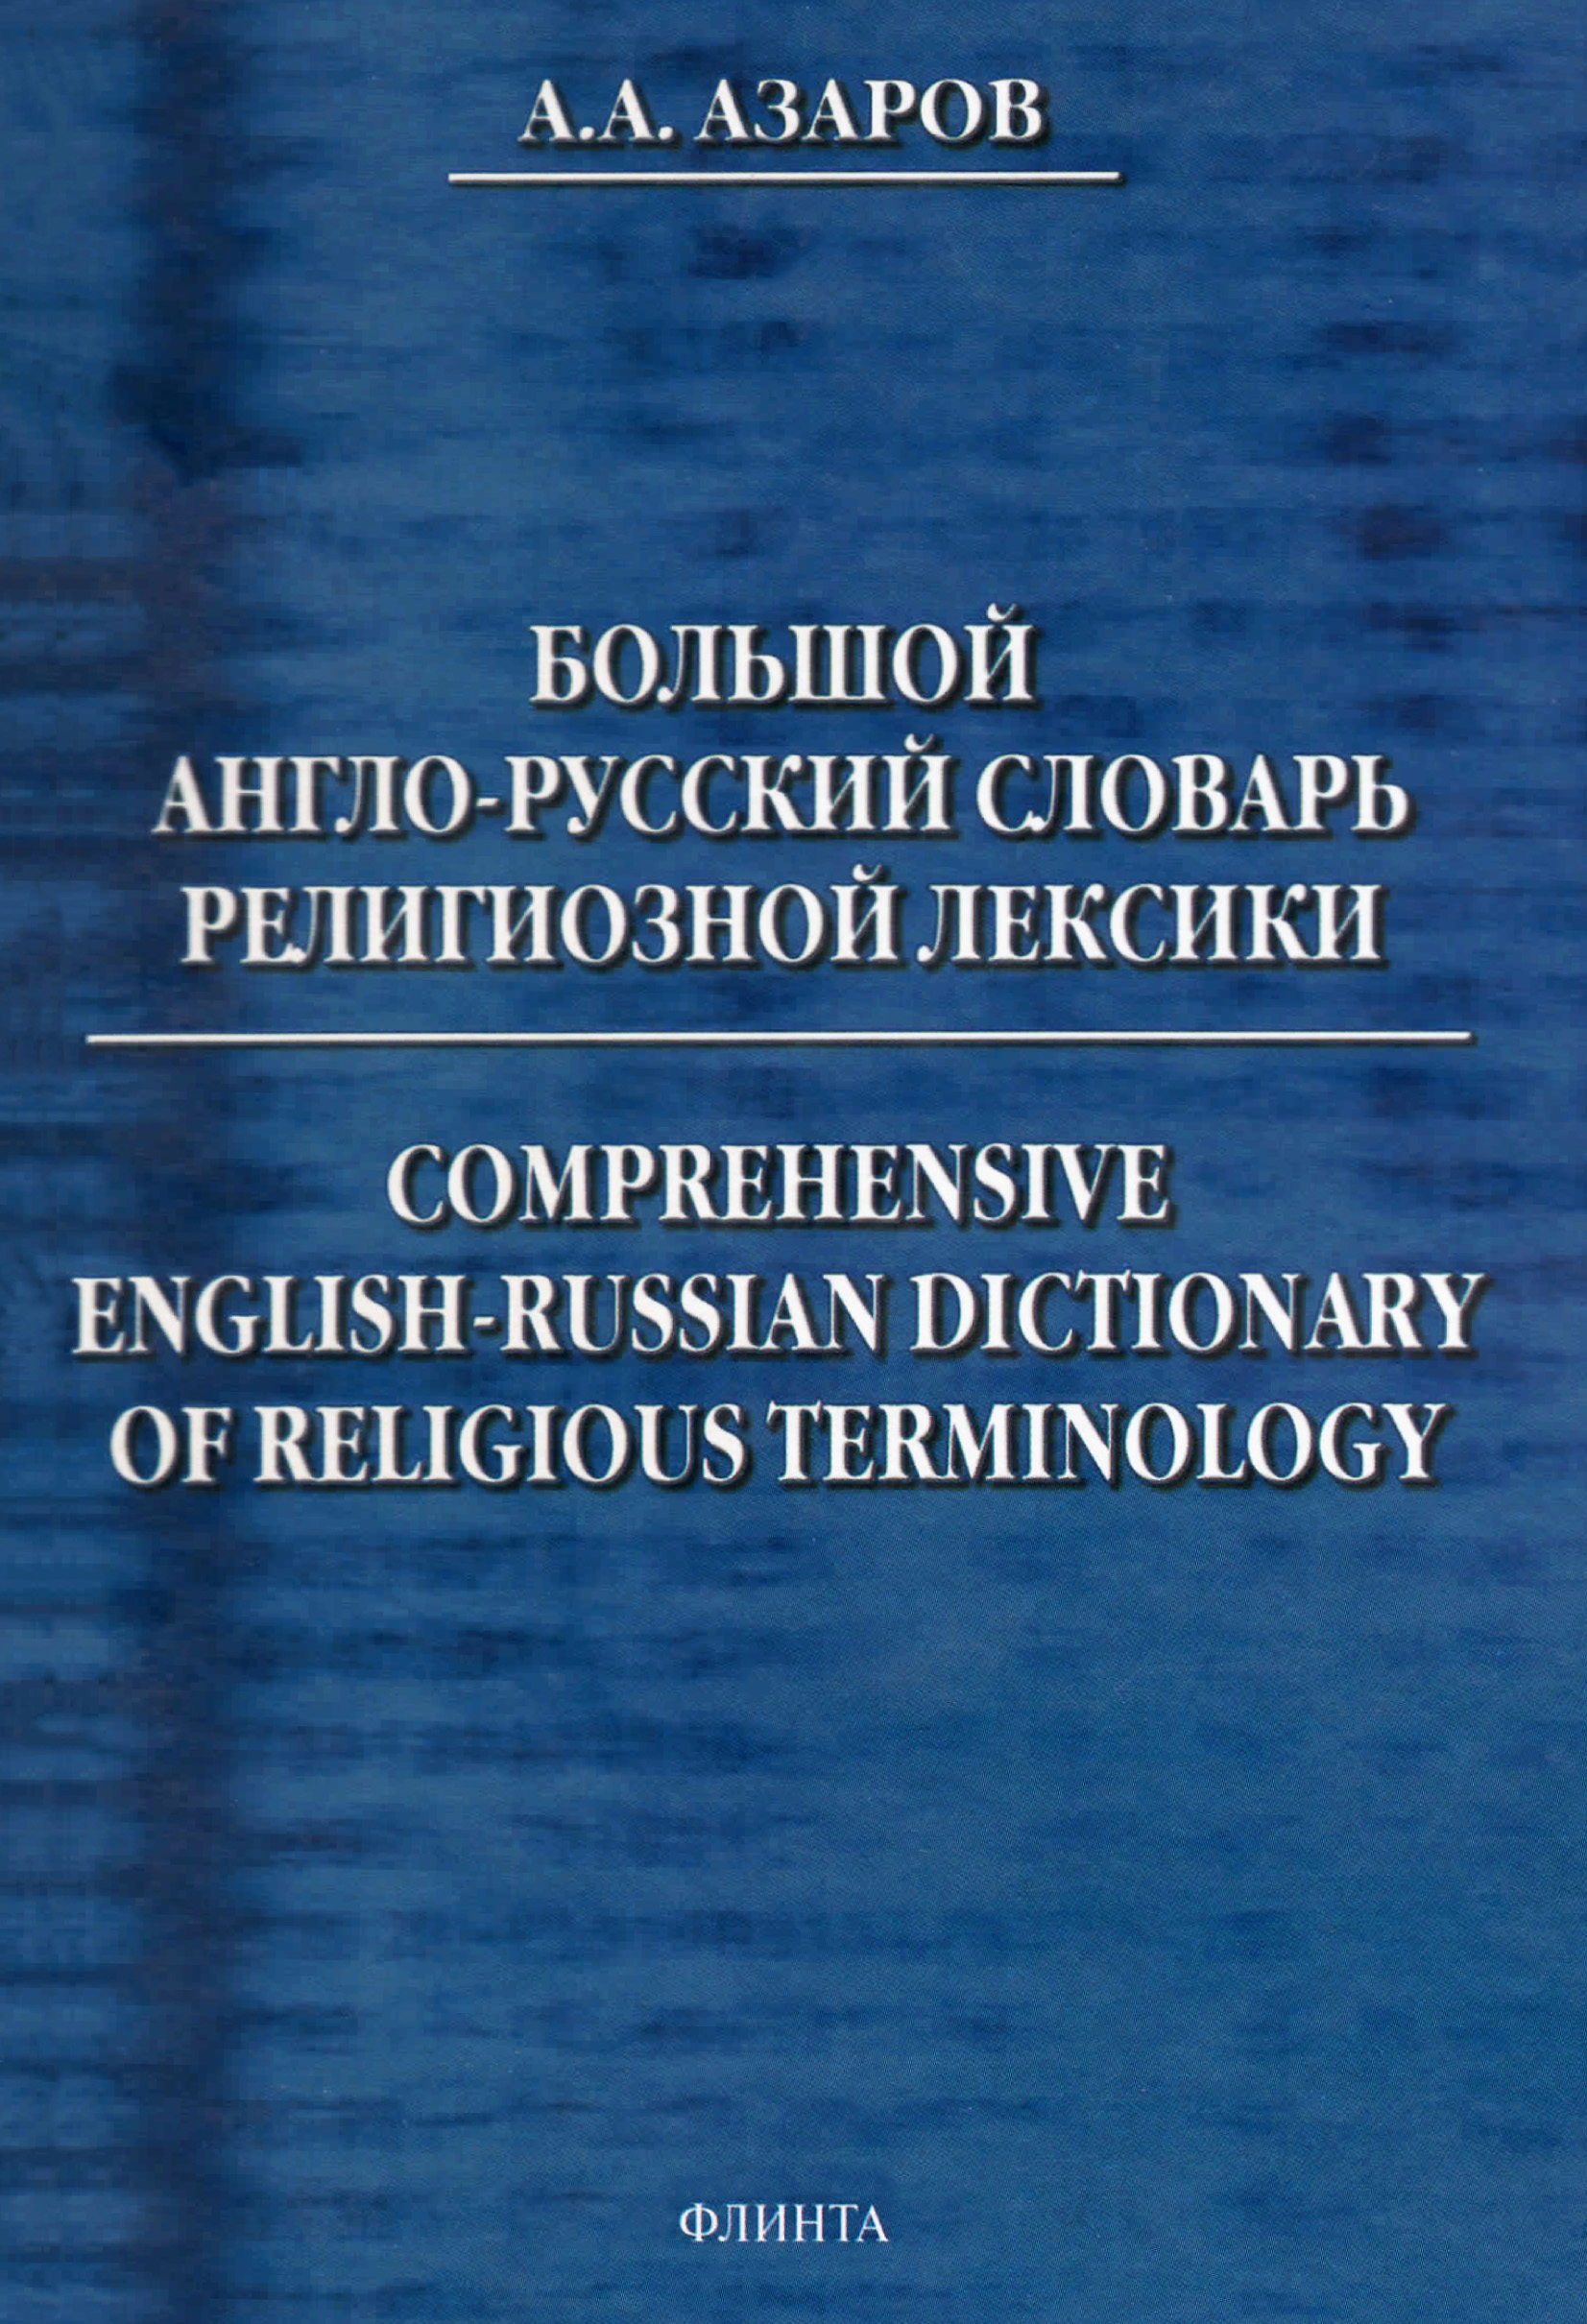 А. А. Азаров Большой англо-русский словарь религиозной лексики. Comprehensive English-Russian Dictionary of Religious Terminology